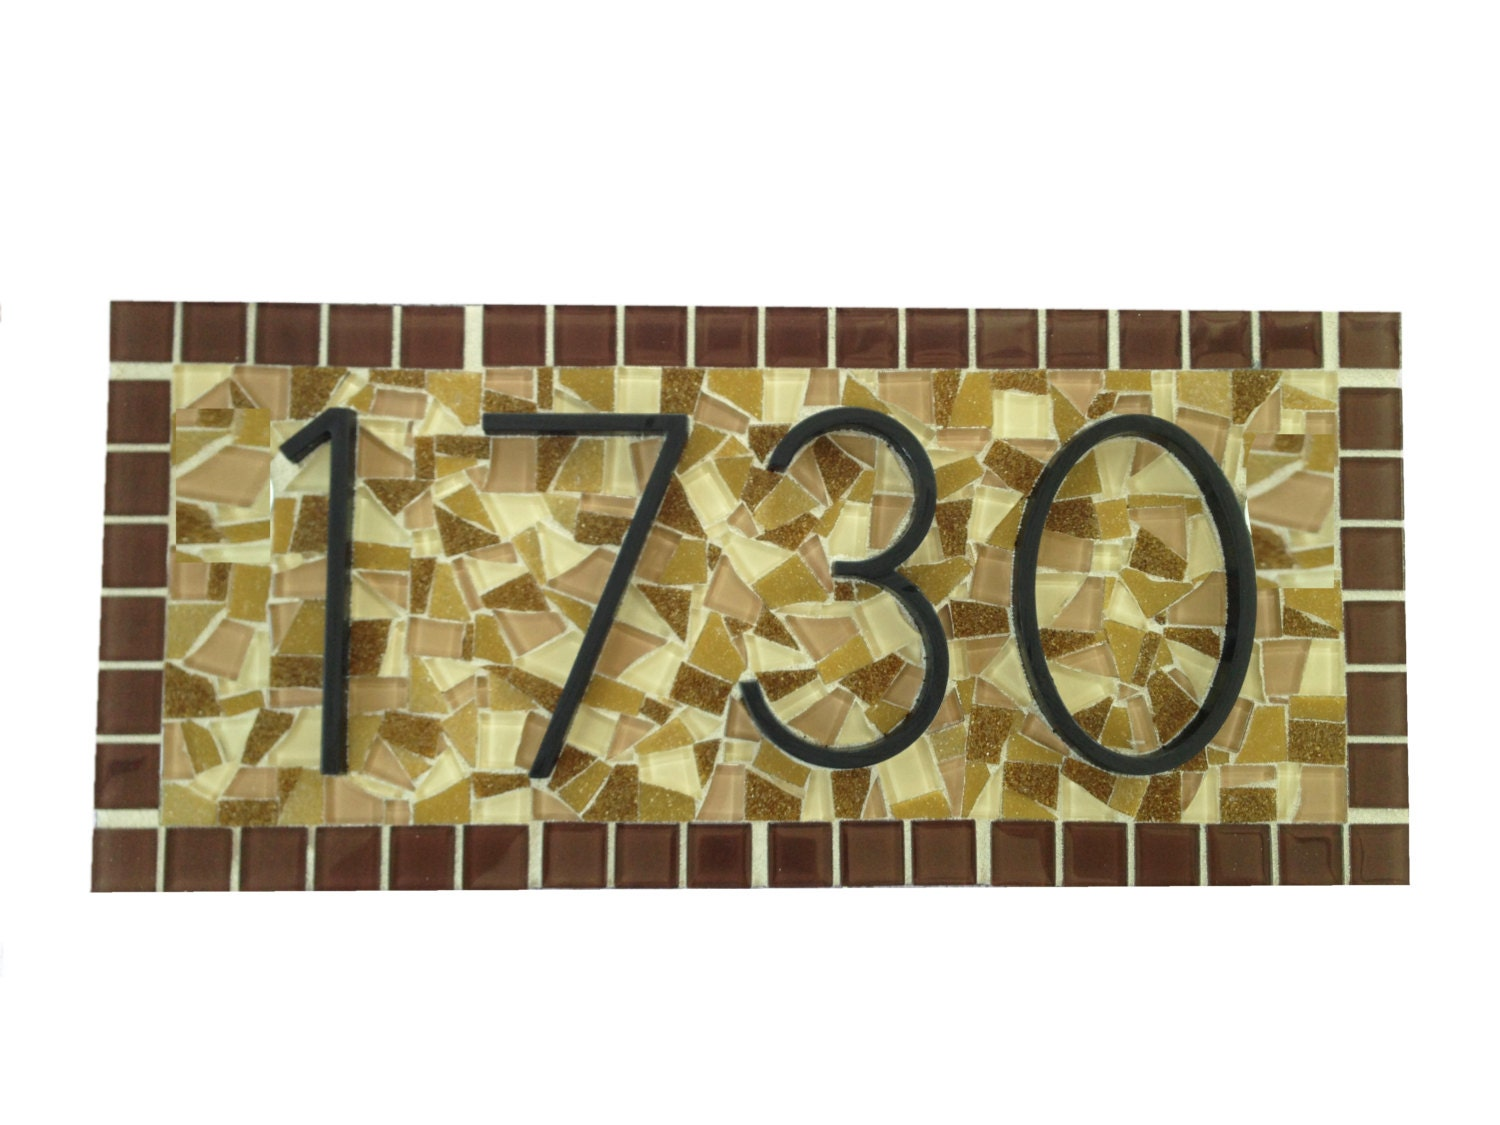 Brown and beige outdoor house number sign custom mosaic - Decorative house number signs ...